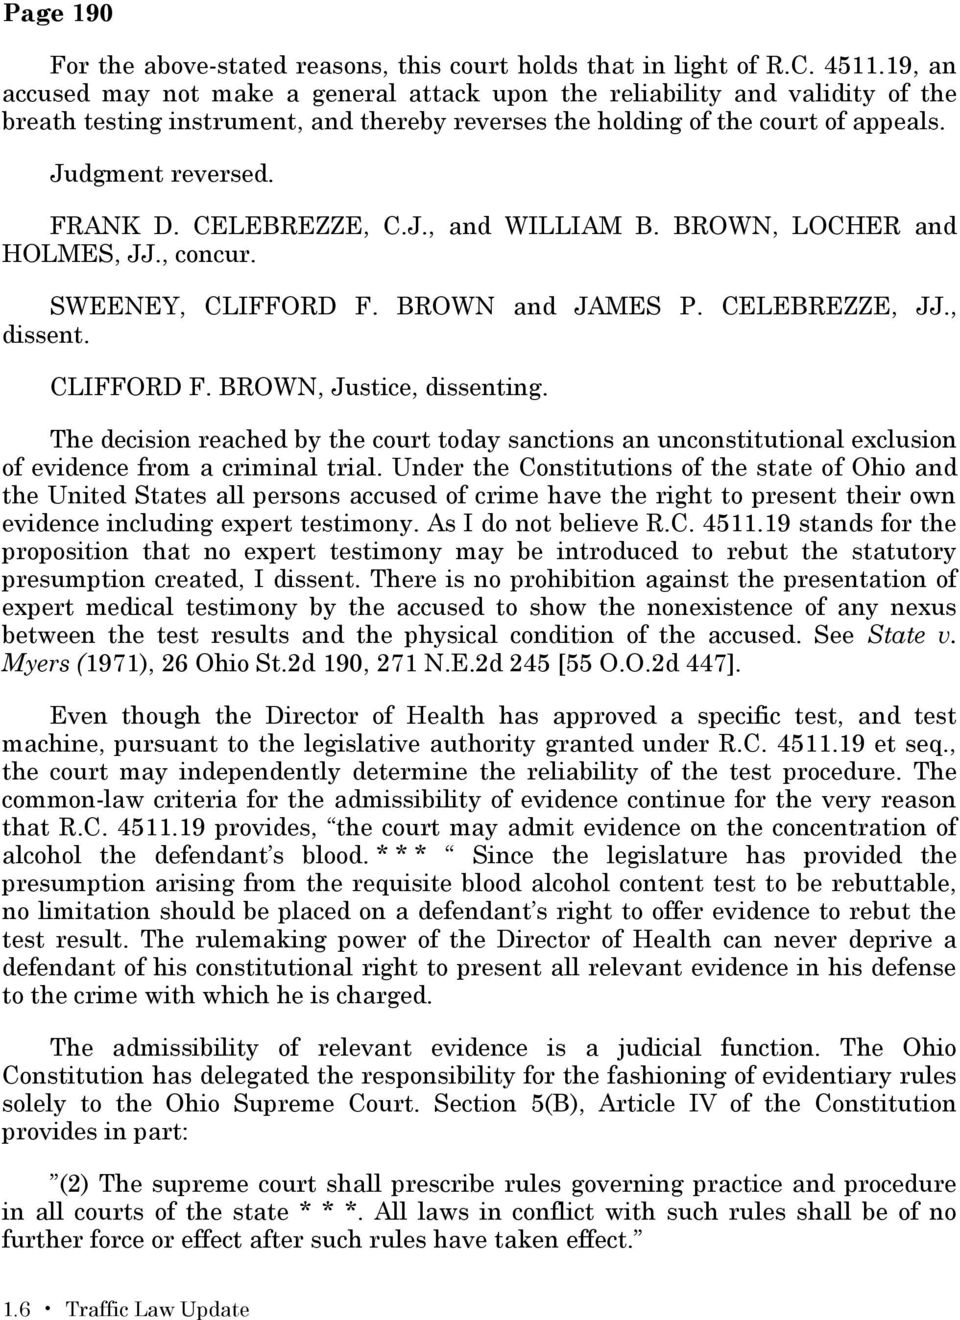 CELEBREZZE, C.J., and WILLIAM B. BROWN, LOCHER and HOLMES, JJ., concur. SWEENEY, CLIFFORD F. BROWN and JAMES P. CELEBREZZE, JJ., dissent. CLIFFORD F. BROWN, Justice, dissenting.